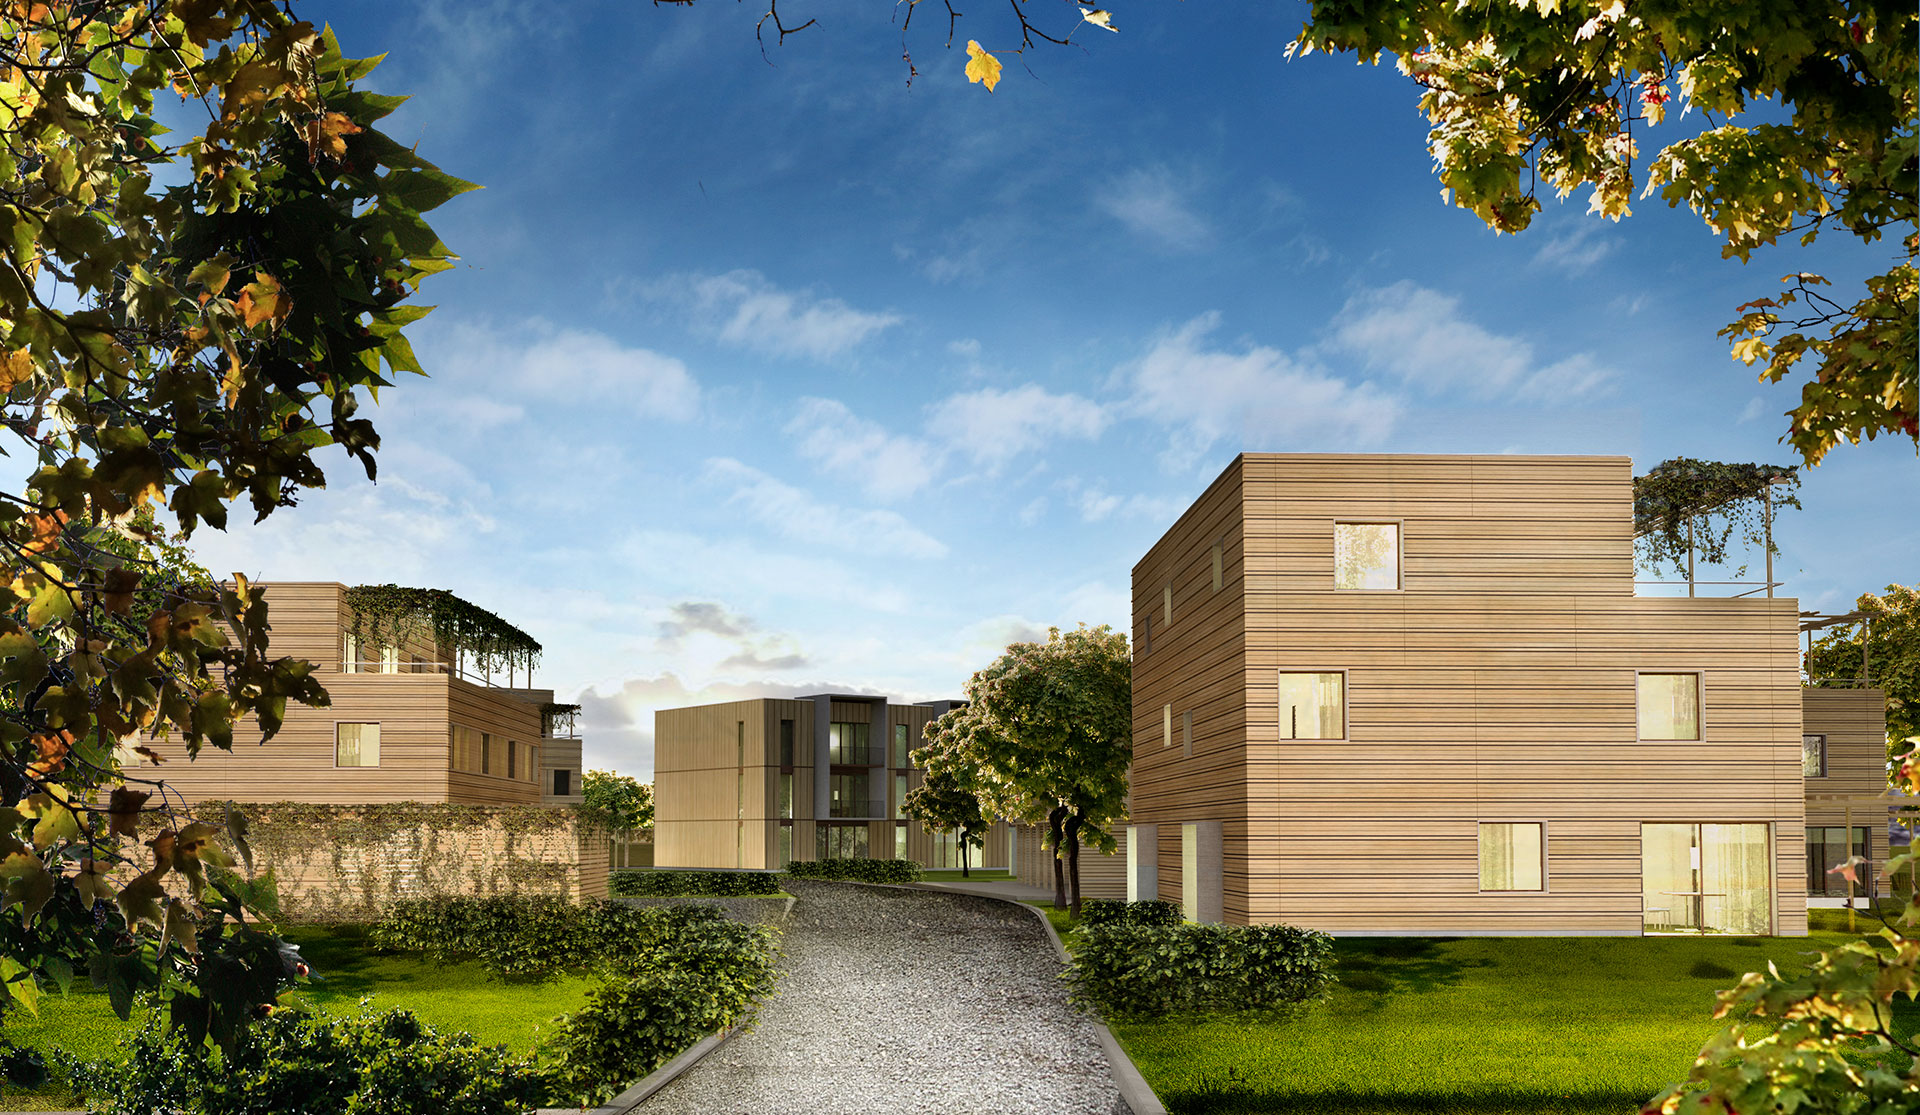 Prefab social housing, City of Wood - Bad Aibling (DE)